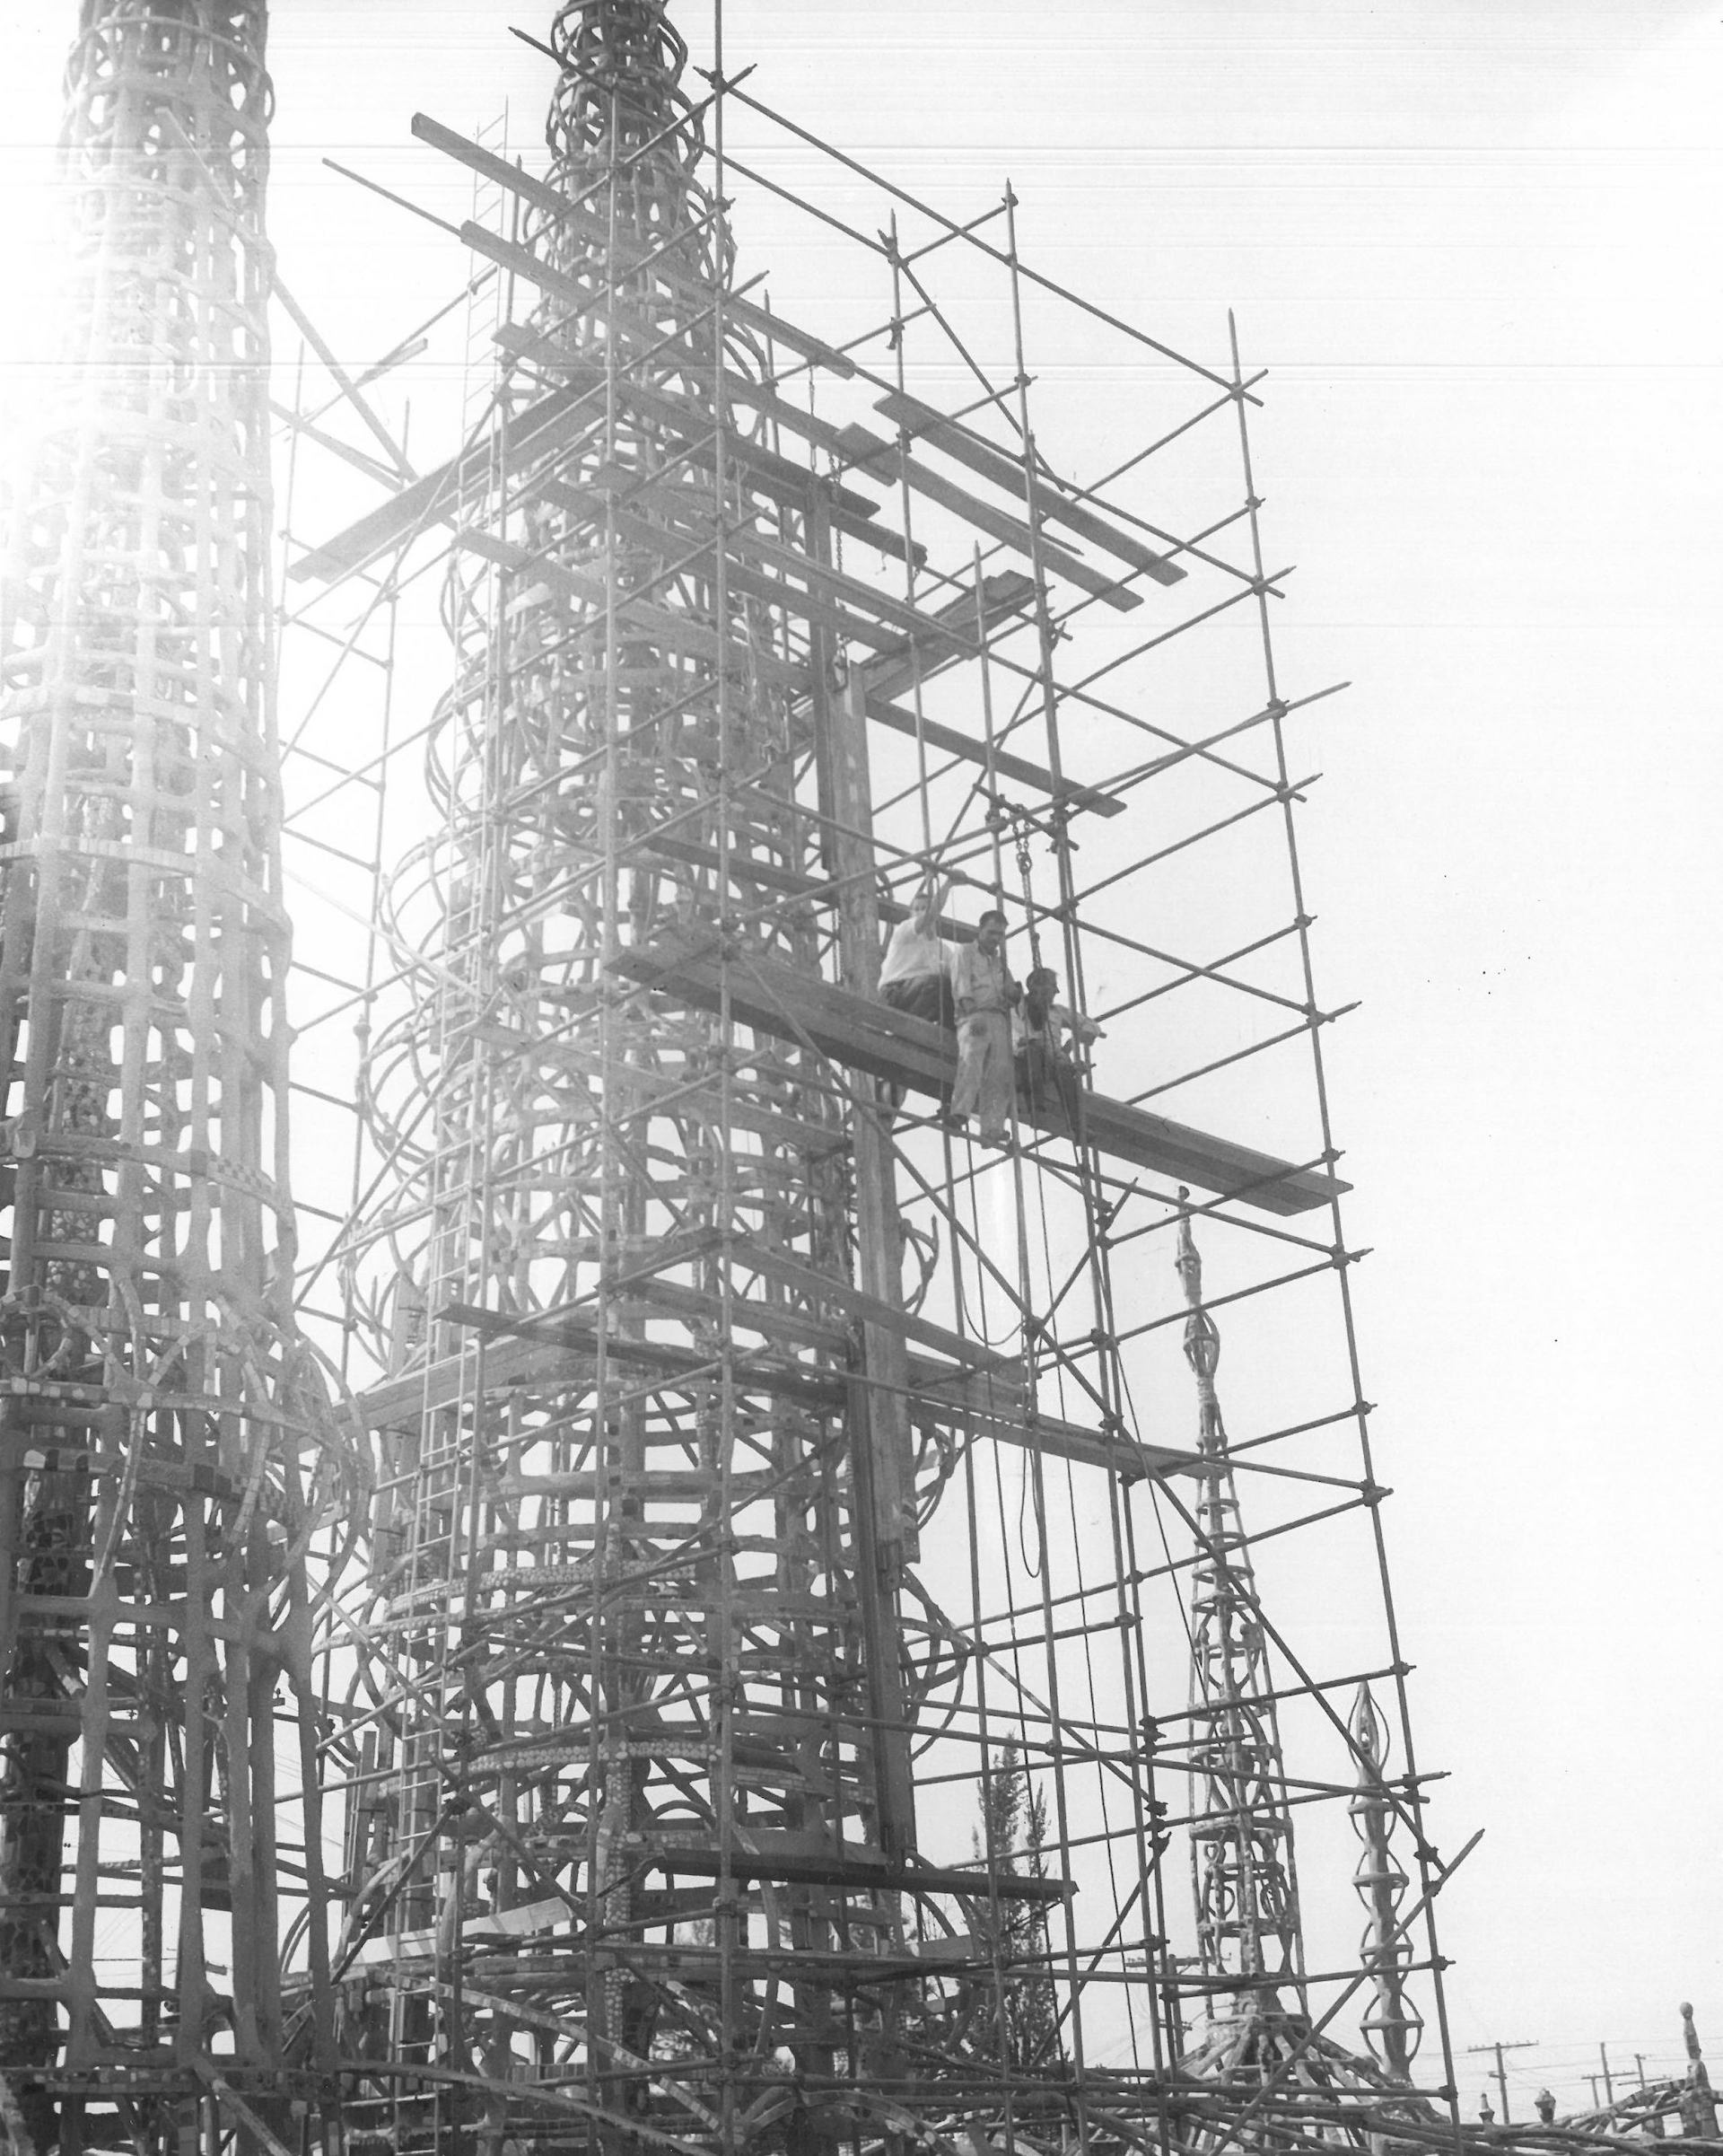 Photo taken during structural testing, July 1959